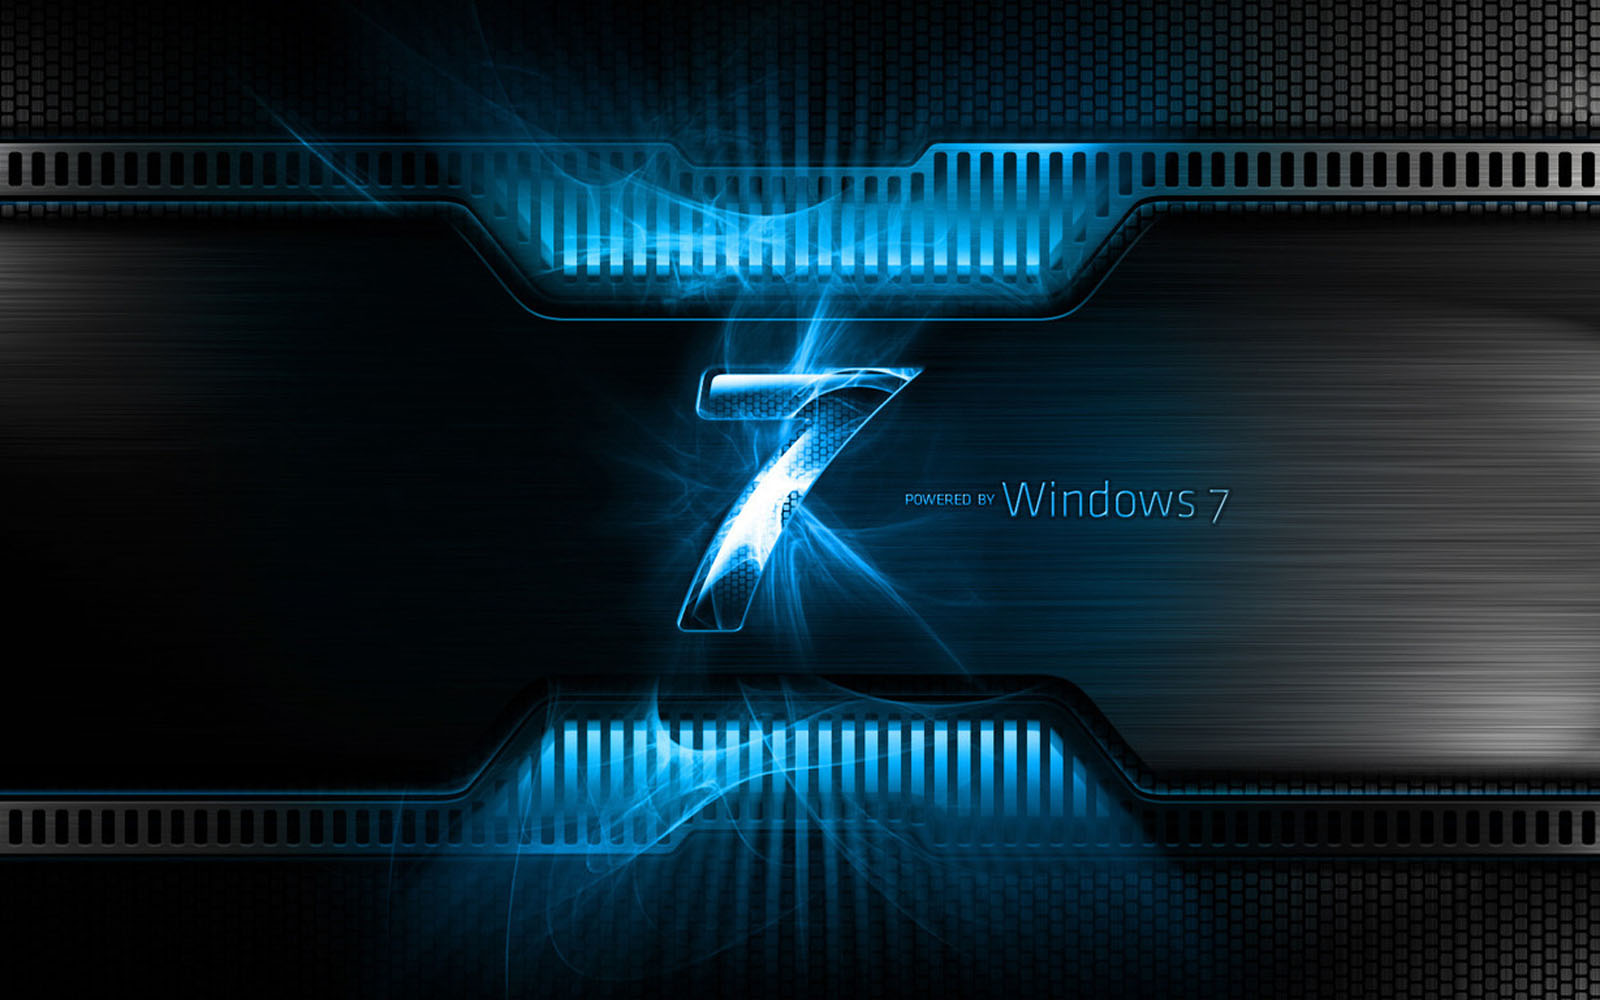 Windows 7 Wallpapers For Free